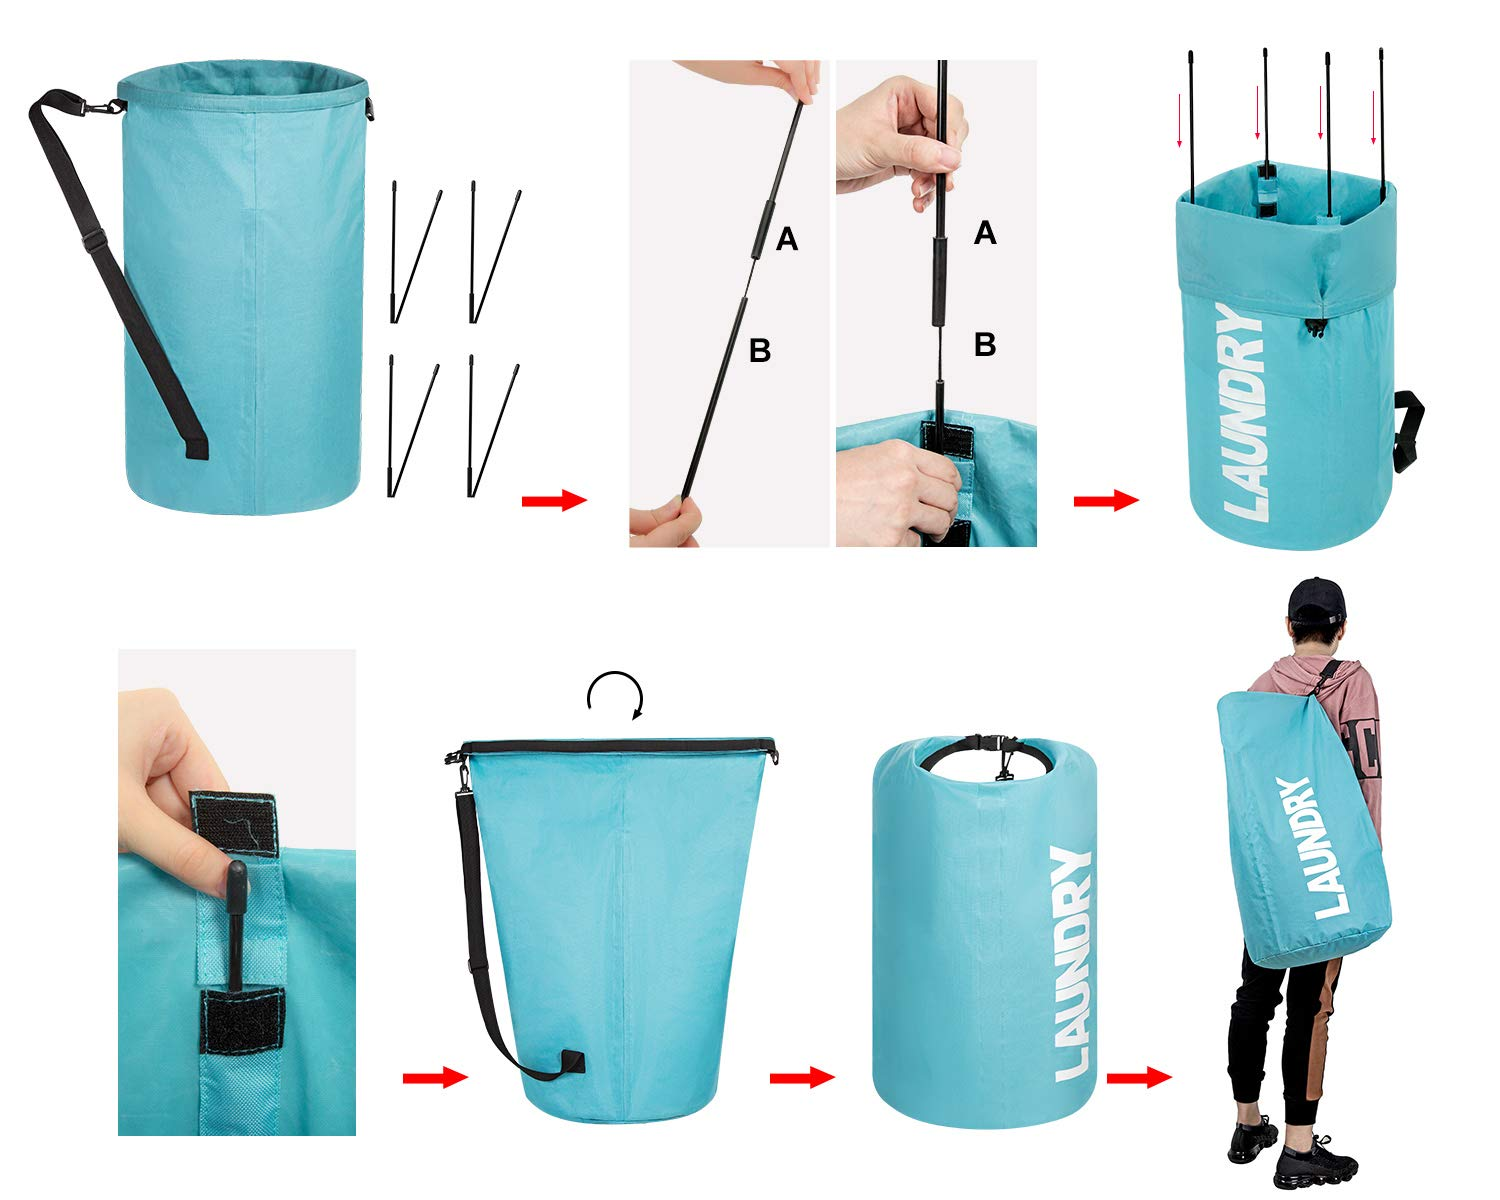 WOWLIVE Extra Large Foldable Laundry Hamper Durable Laundry Basket Collapsible Laundry Bag Backpack Laundry LinerDirty Clothes Hamper Standing Waterproof Hamper for Laundry (Light Blue)